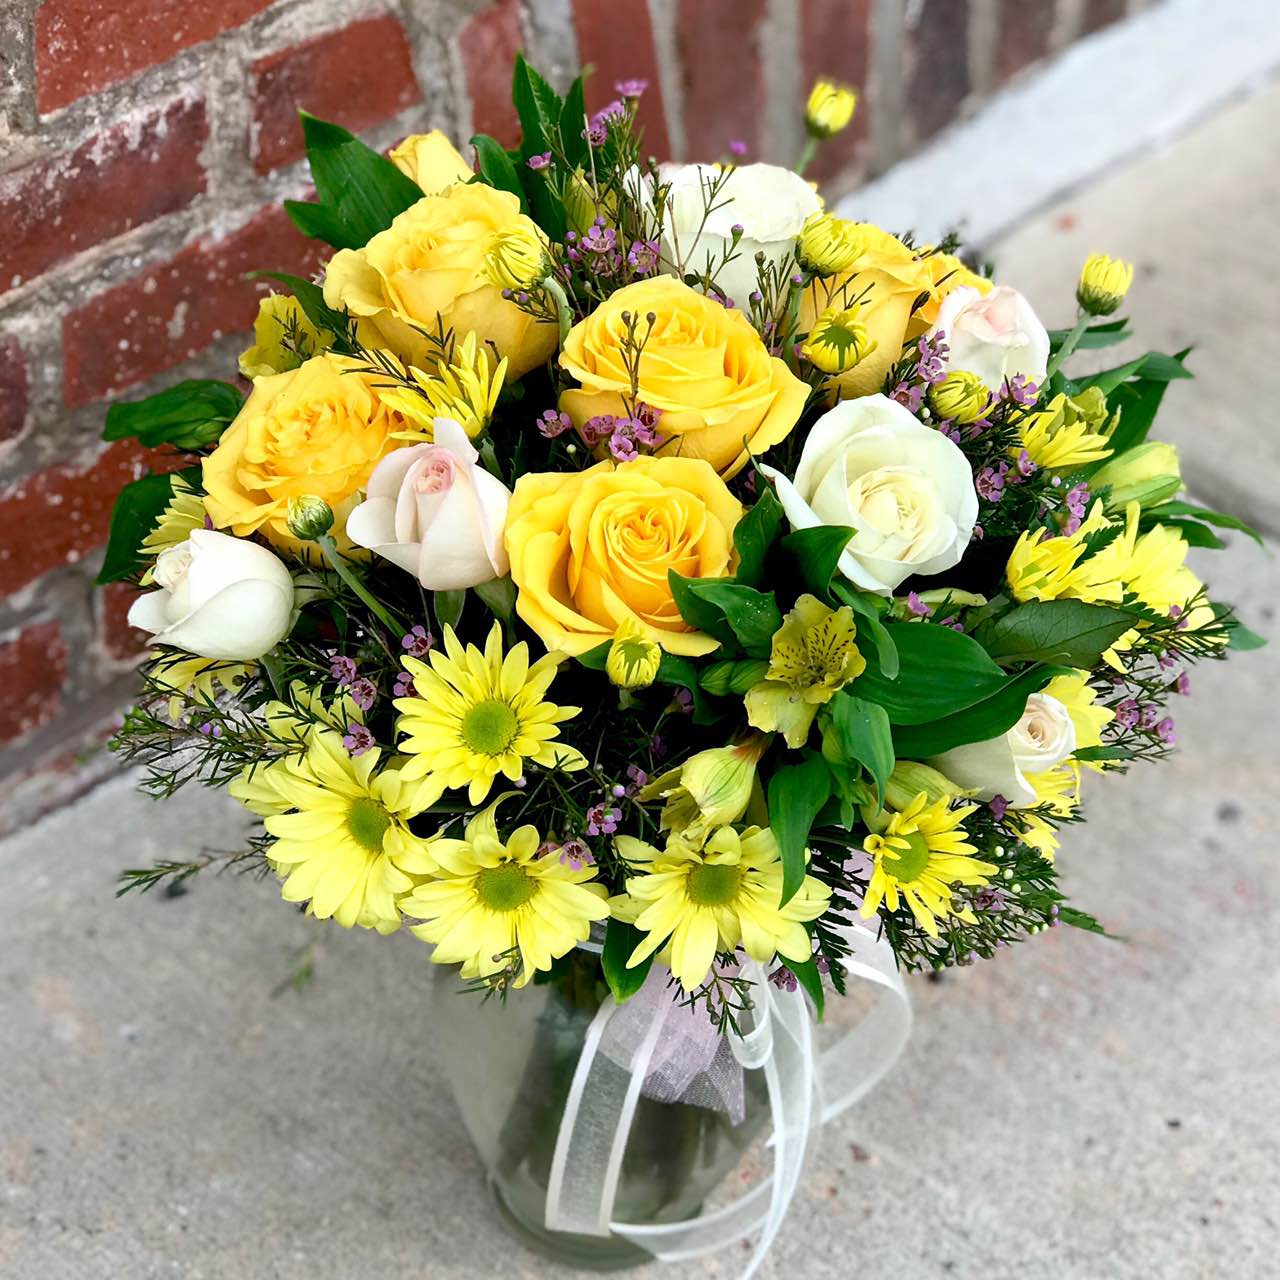 Would you walk a mile for one of her smiles? You can bet she'll be walking toward you, arms outstretched, when she receives this gorgeous array. And wait till you see the smile she gives you.  Includes:  Yellow and white roses, yellow alstroemeria, yellow daisies, wax flowers, fern. Vase Free message card